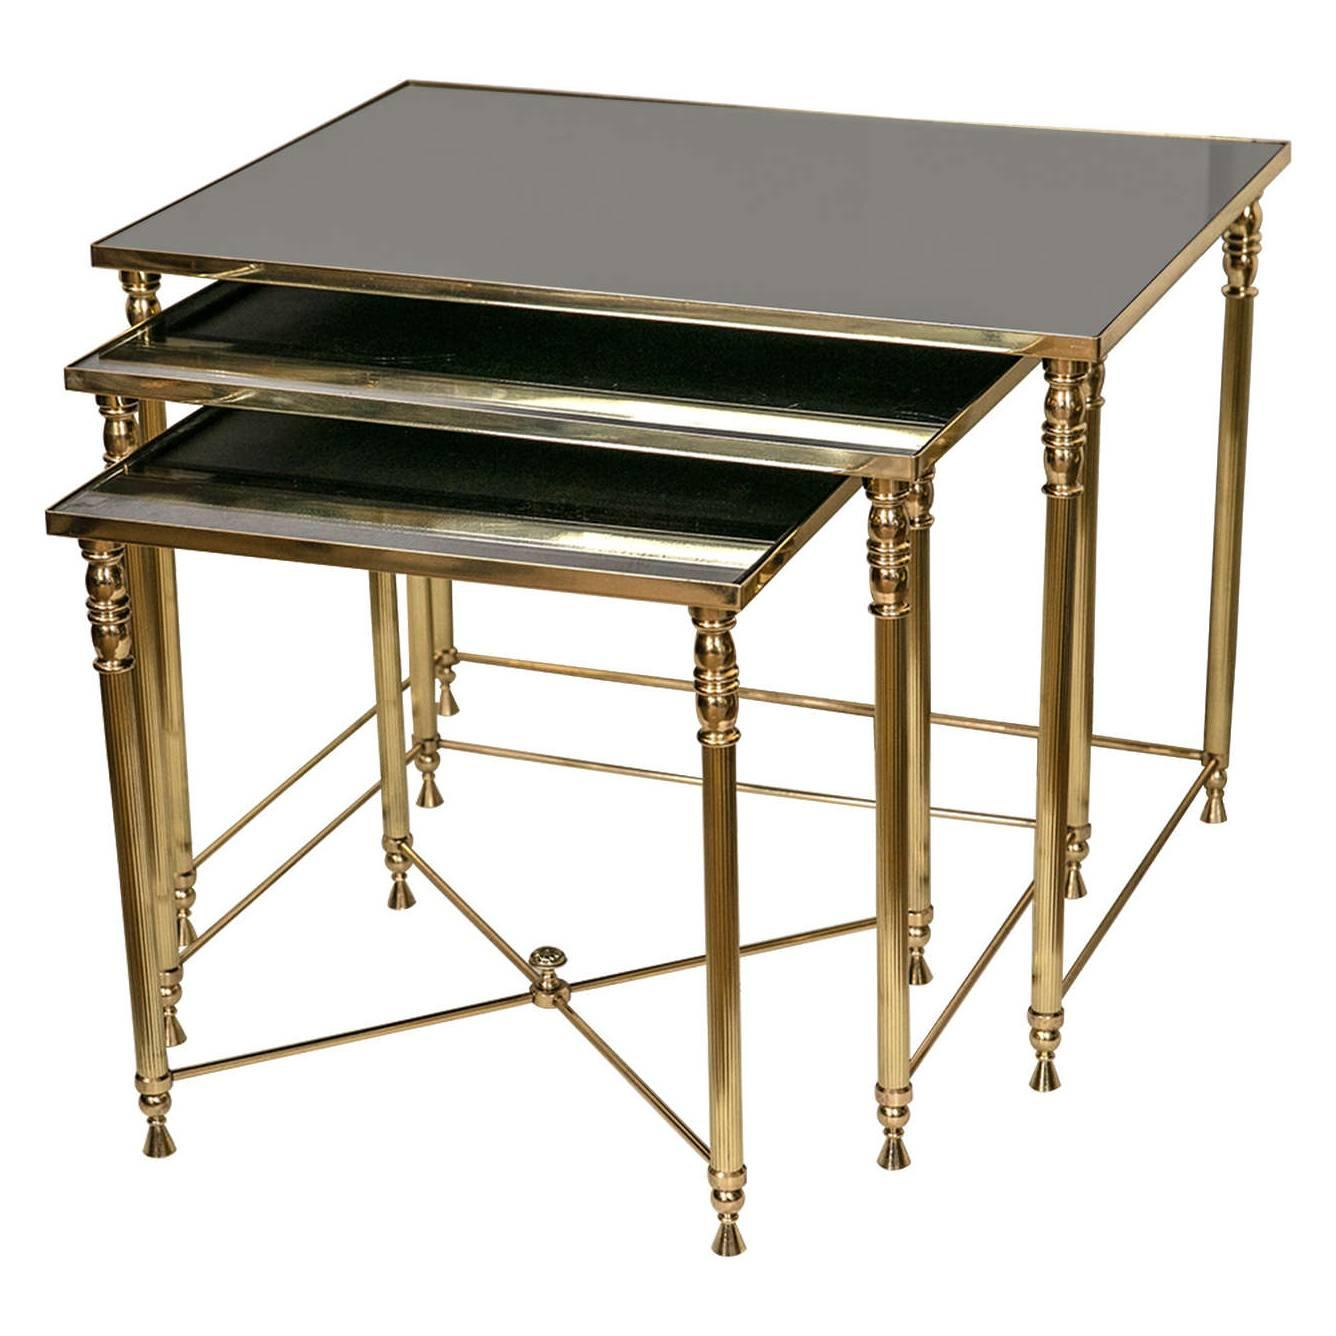 Set of Vintage French Brass Neoclassical Style Nesting Tables